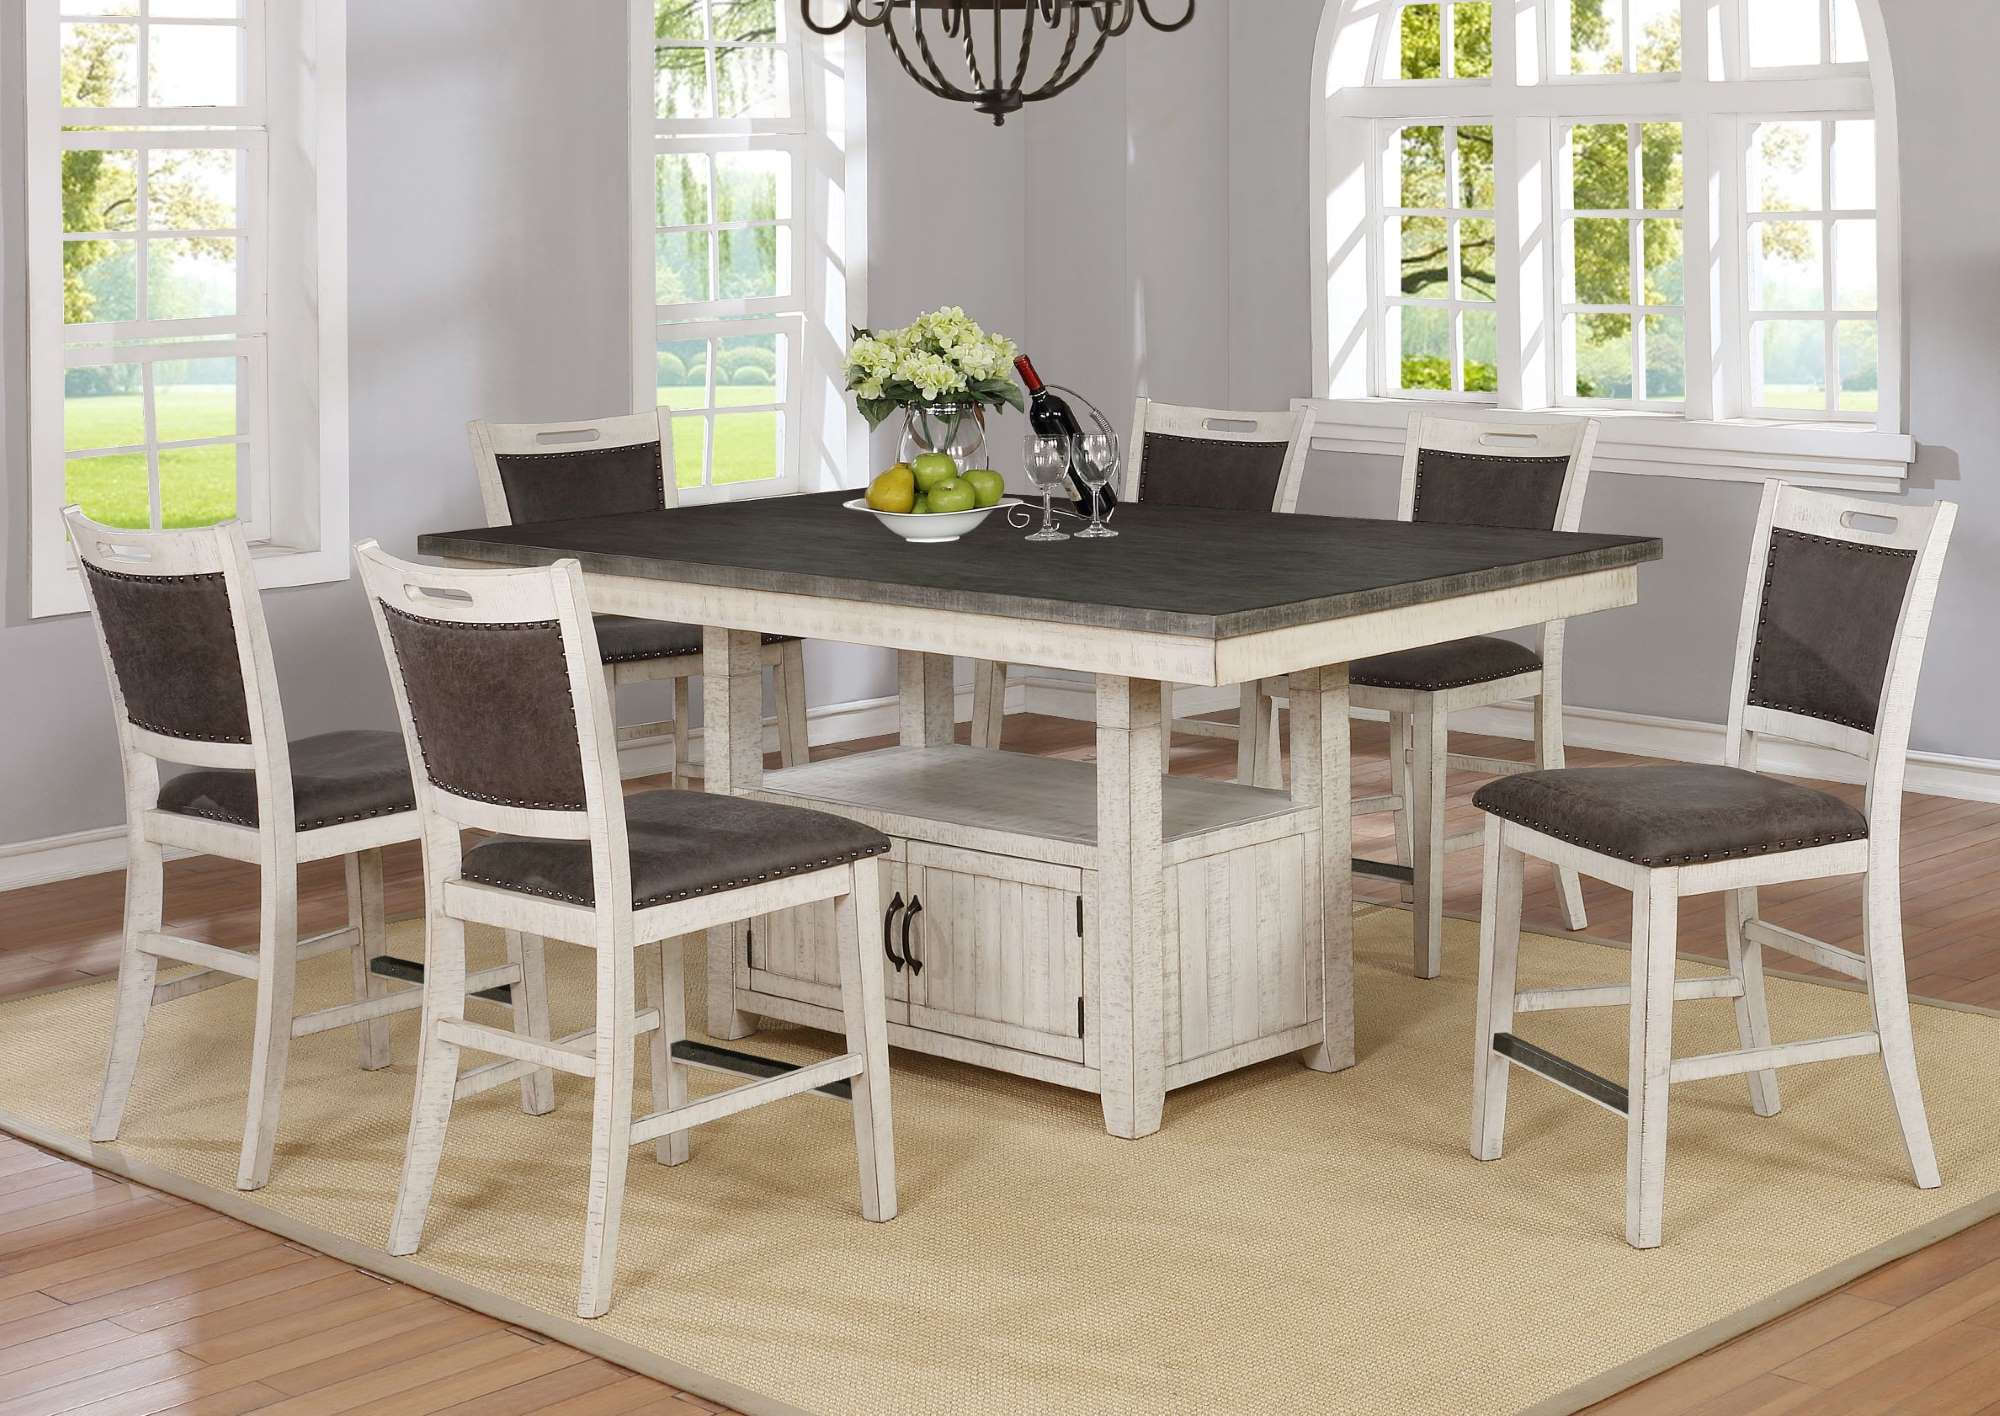 1852 Jonah Counter Height Tables Table & 6 Stools $979.99